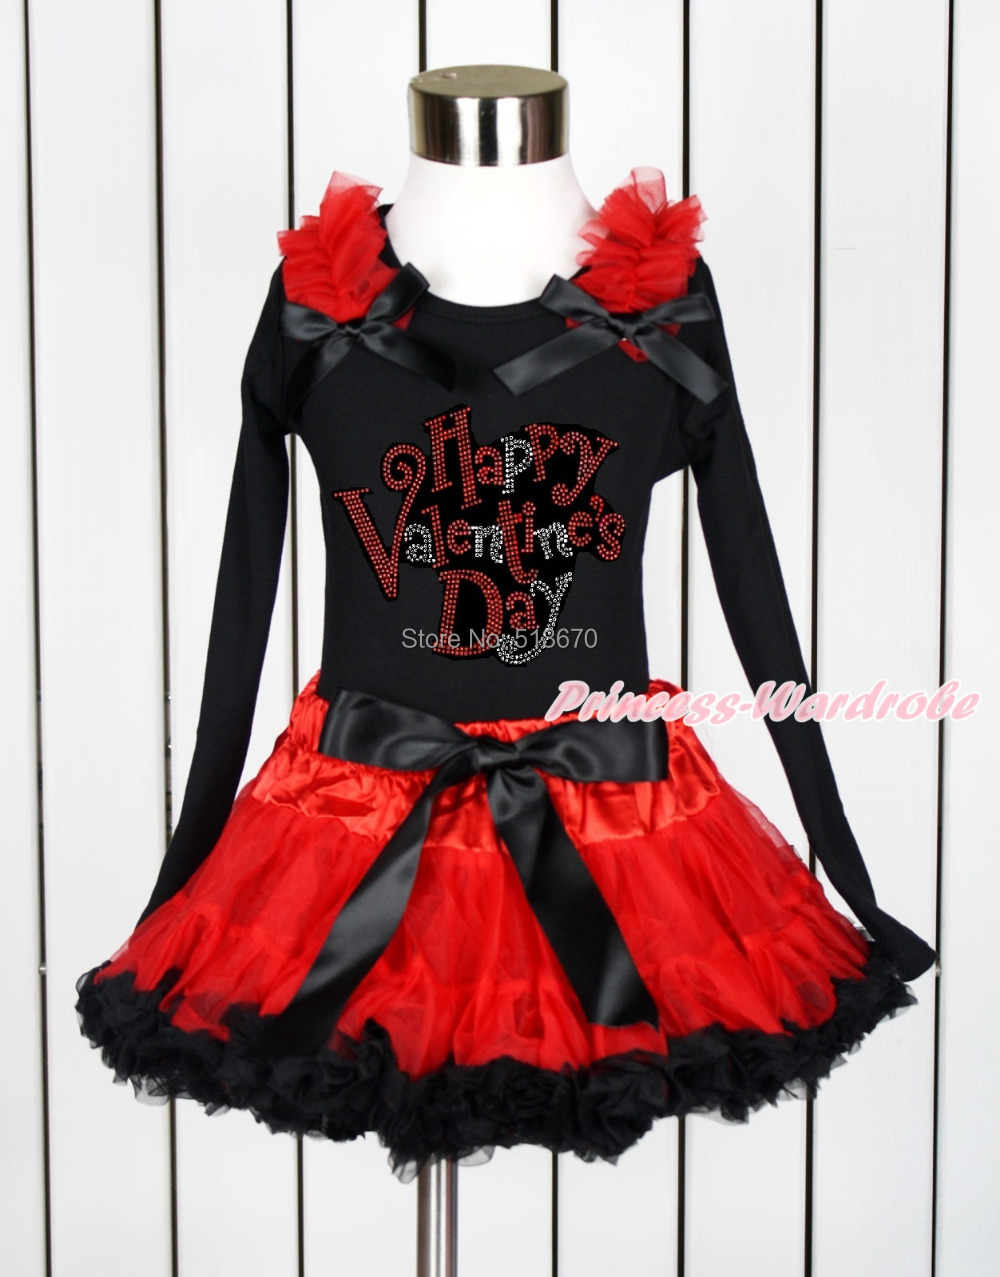 Rhinestone Happy Valentines Day Black Pettitop Red Black Pettiskirt Set 1-8Year MAPSA0110<br>